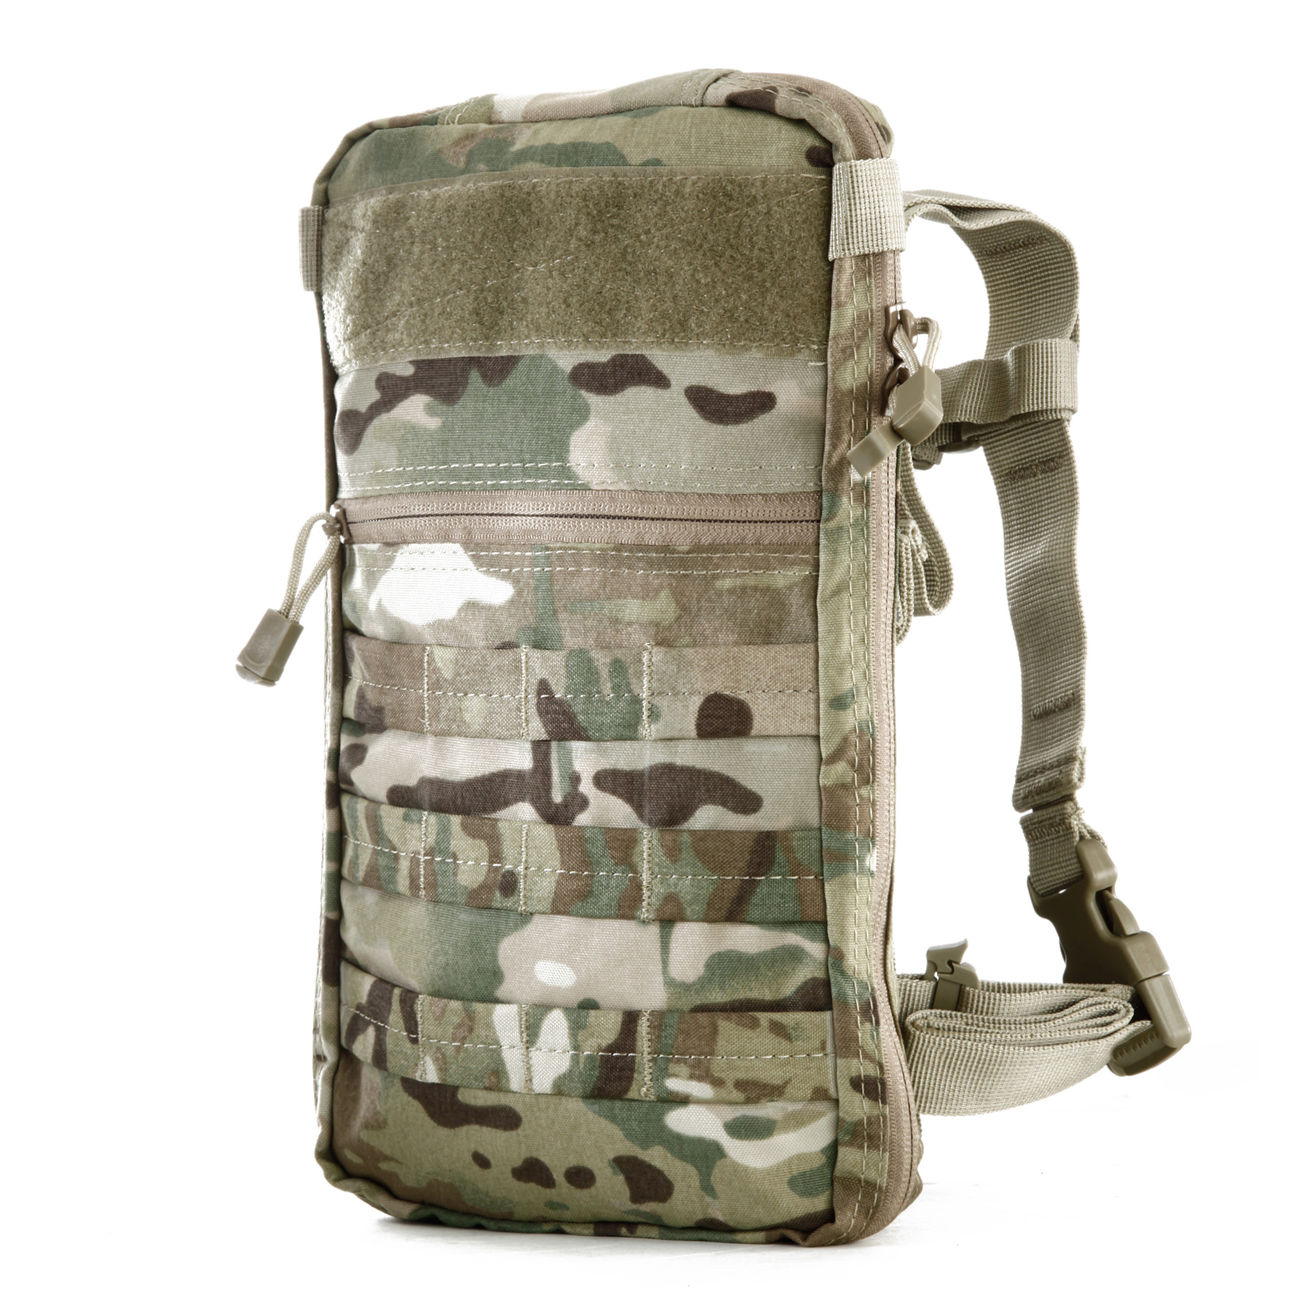 Condor Tidepool Hydration Carrier Multicam 3